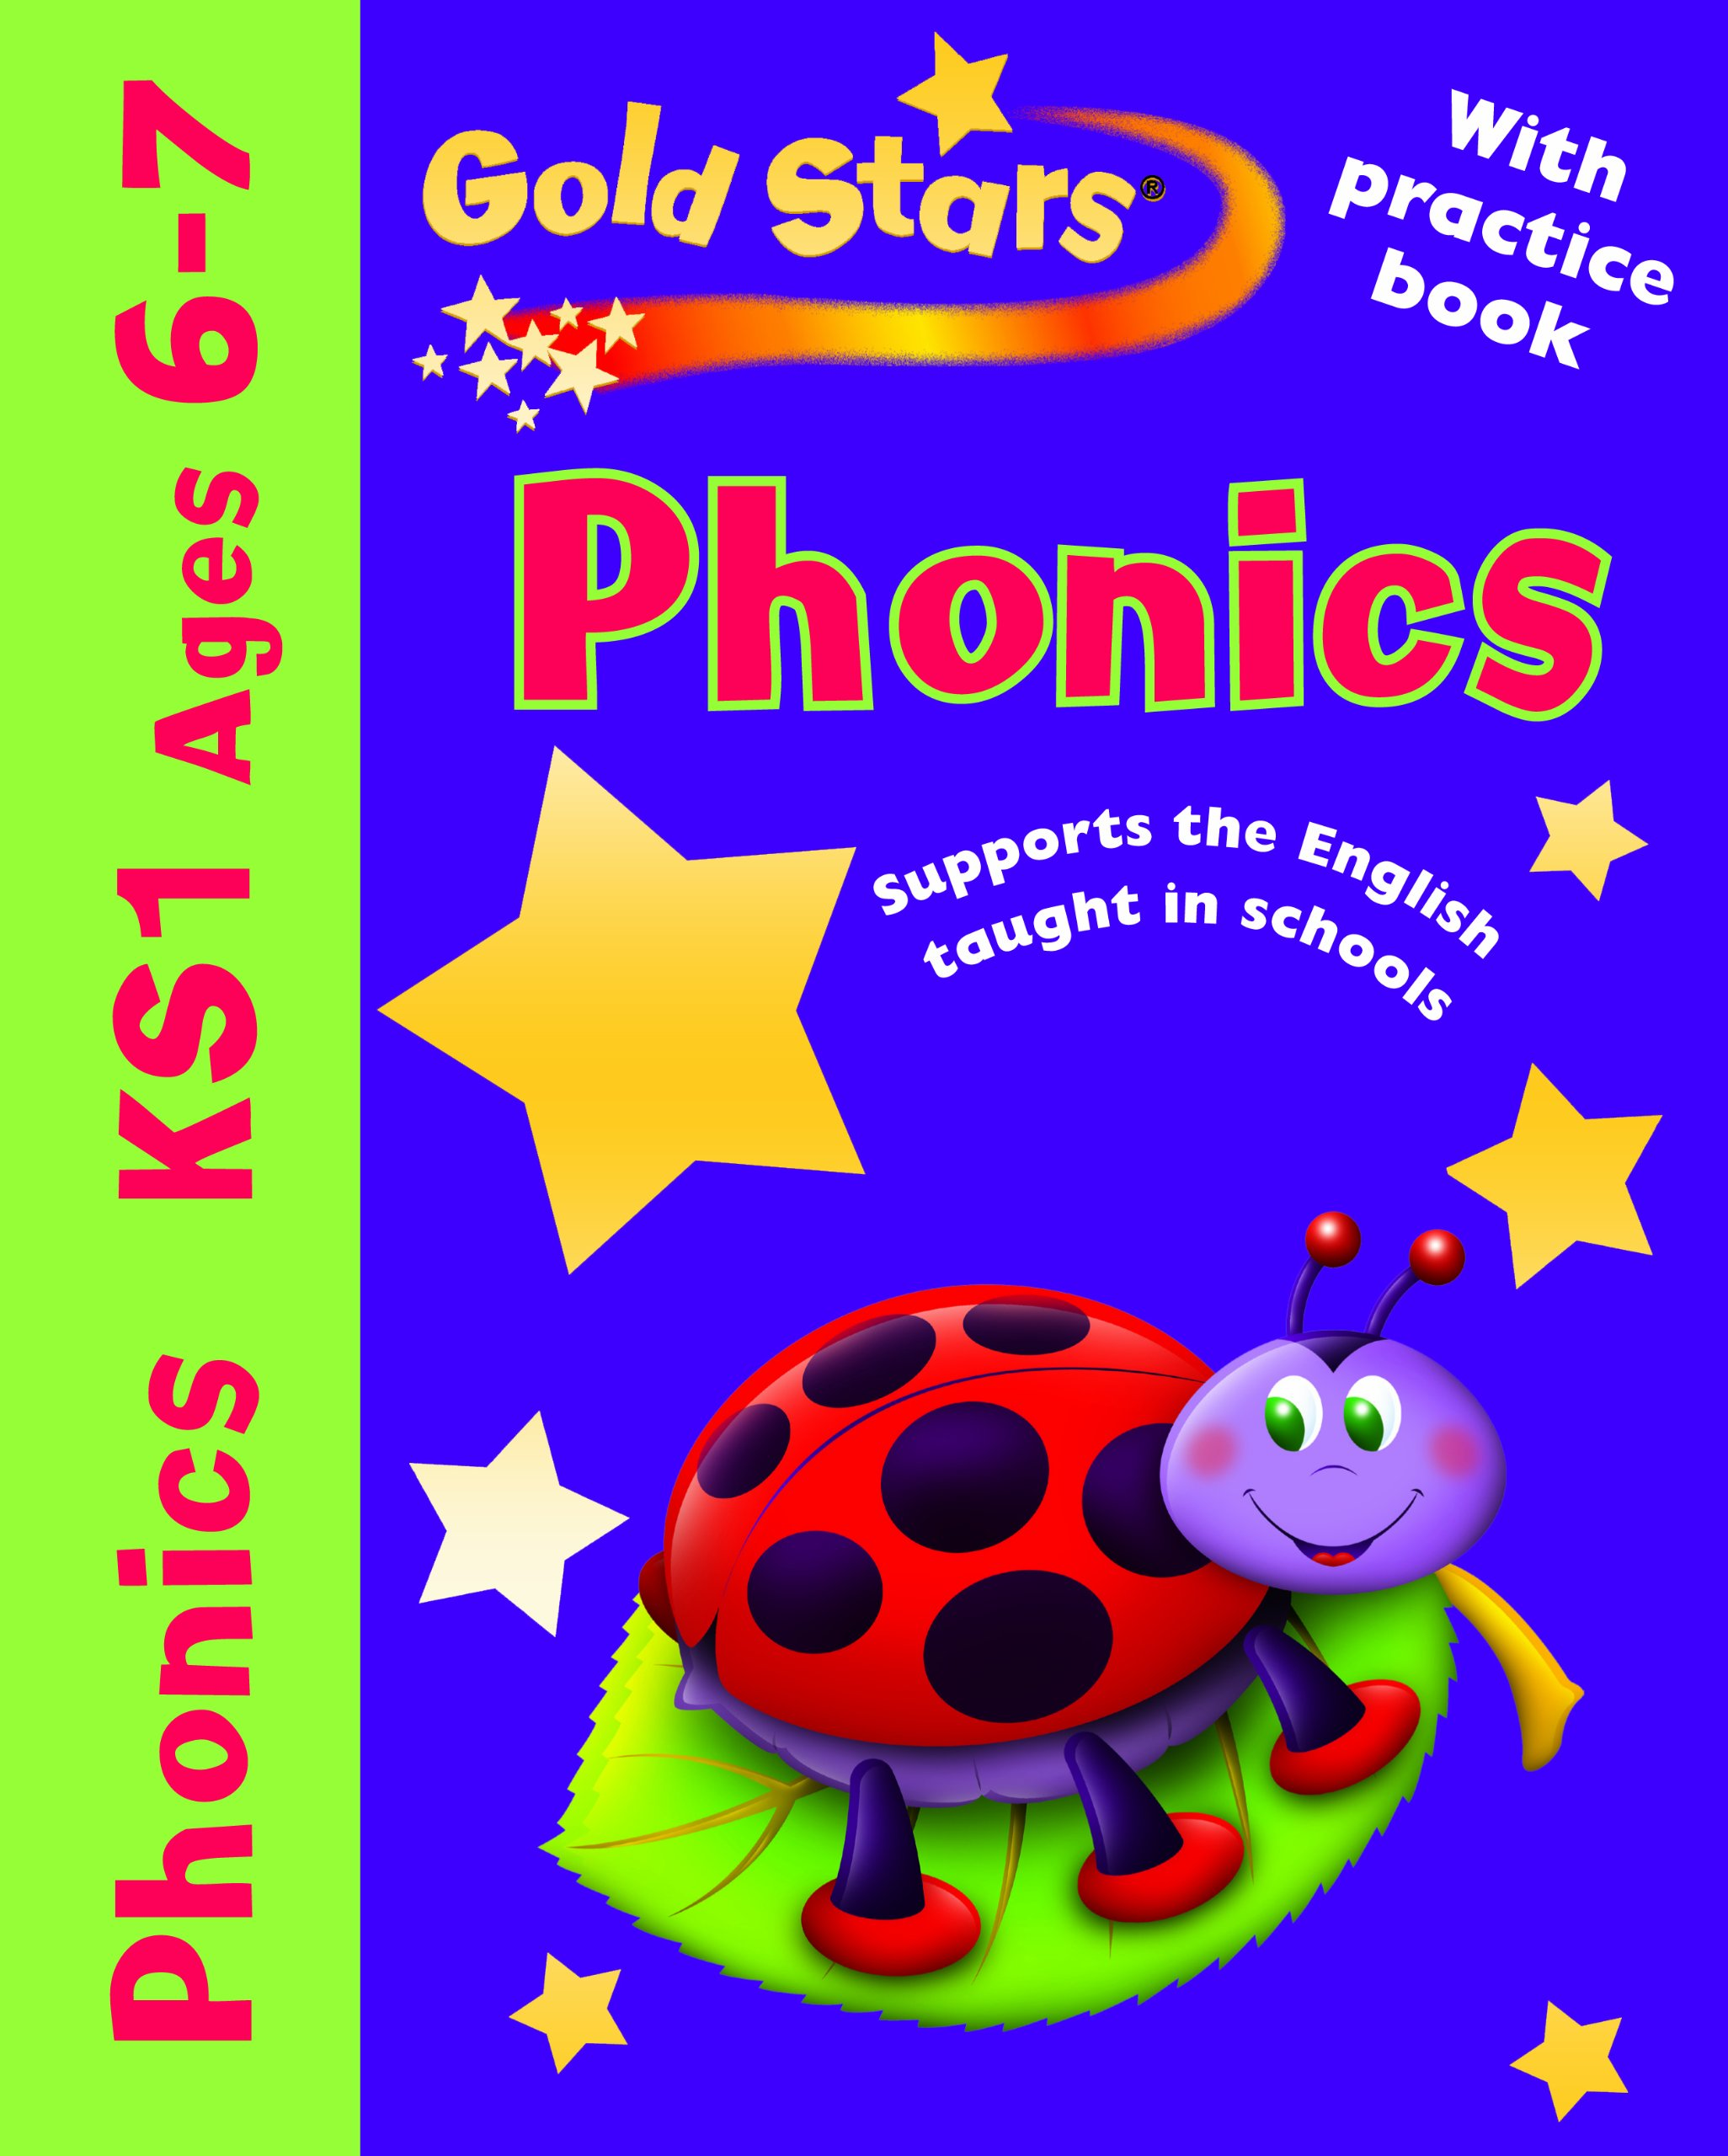 Gold Stars Pack (Workbook and Practice Book): Phonics 6-7 pdf